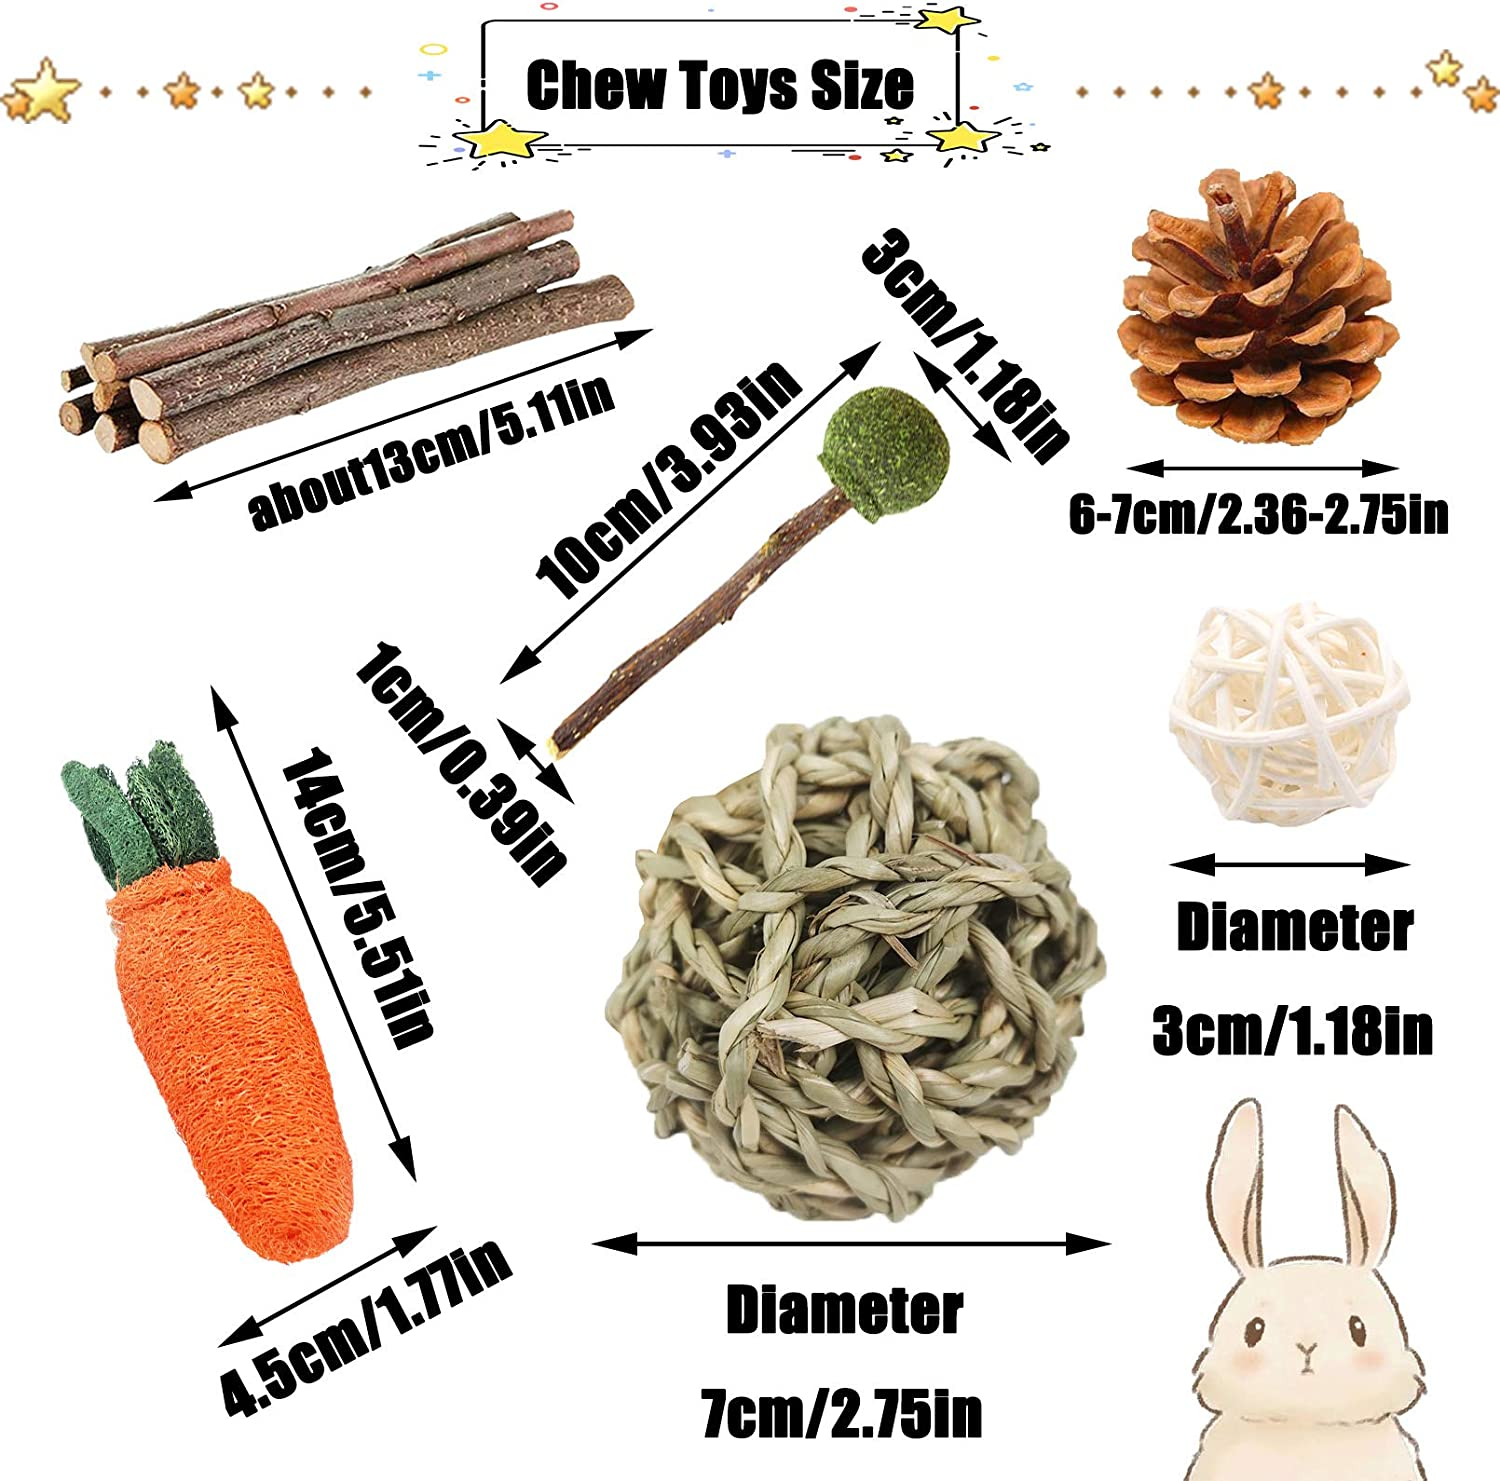 PINVNBY 20PCS Bunny chew Toys Pet Bunny Tooth Chew Toys Organic Natural  Apple Wood Rattan Seagrass Ball Carrot Pine Cone Grass Lollipop for  Chinchilla ...